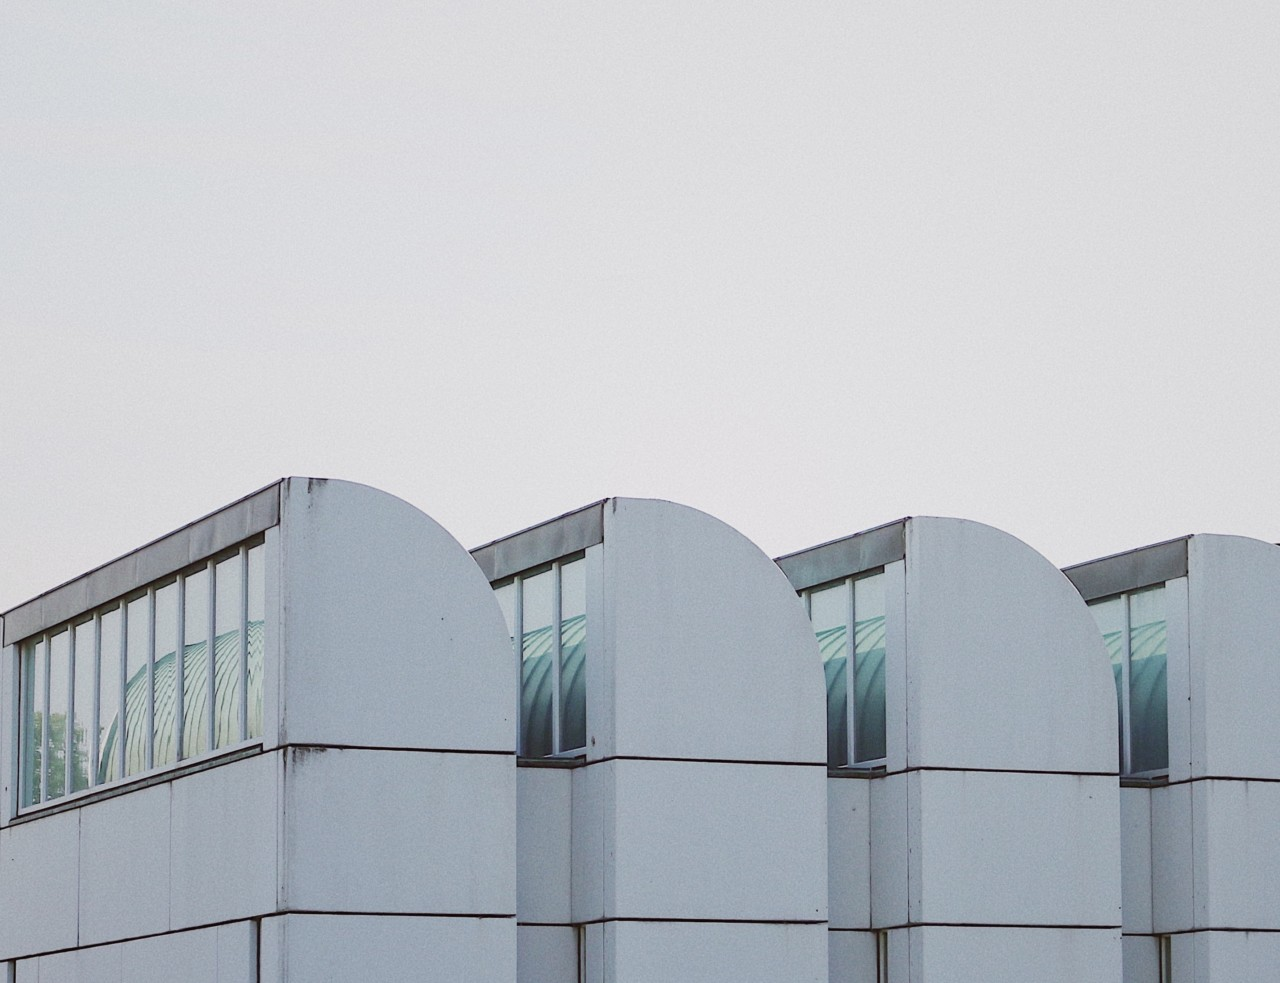 Photo of the Bauhaus Archive in Berlin, Germany